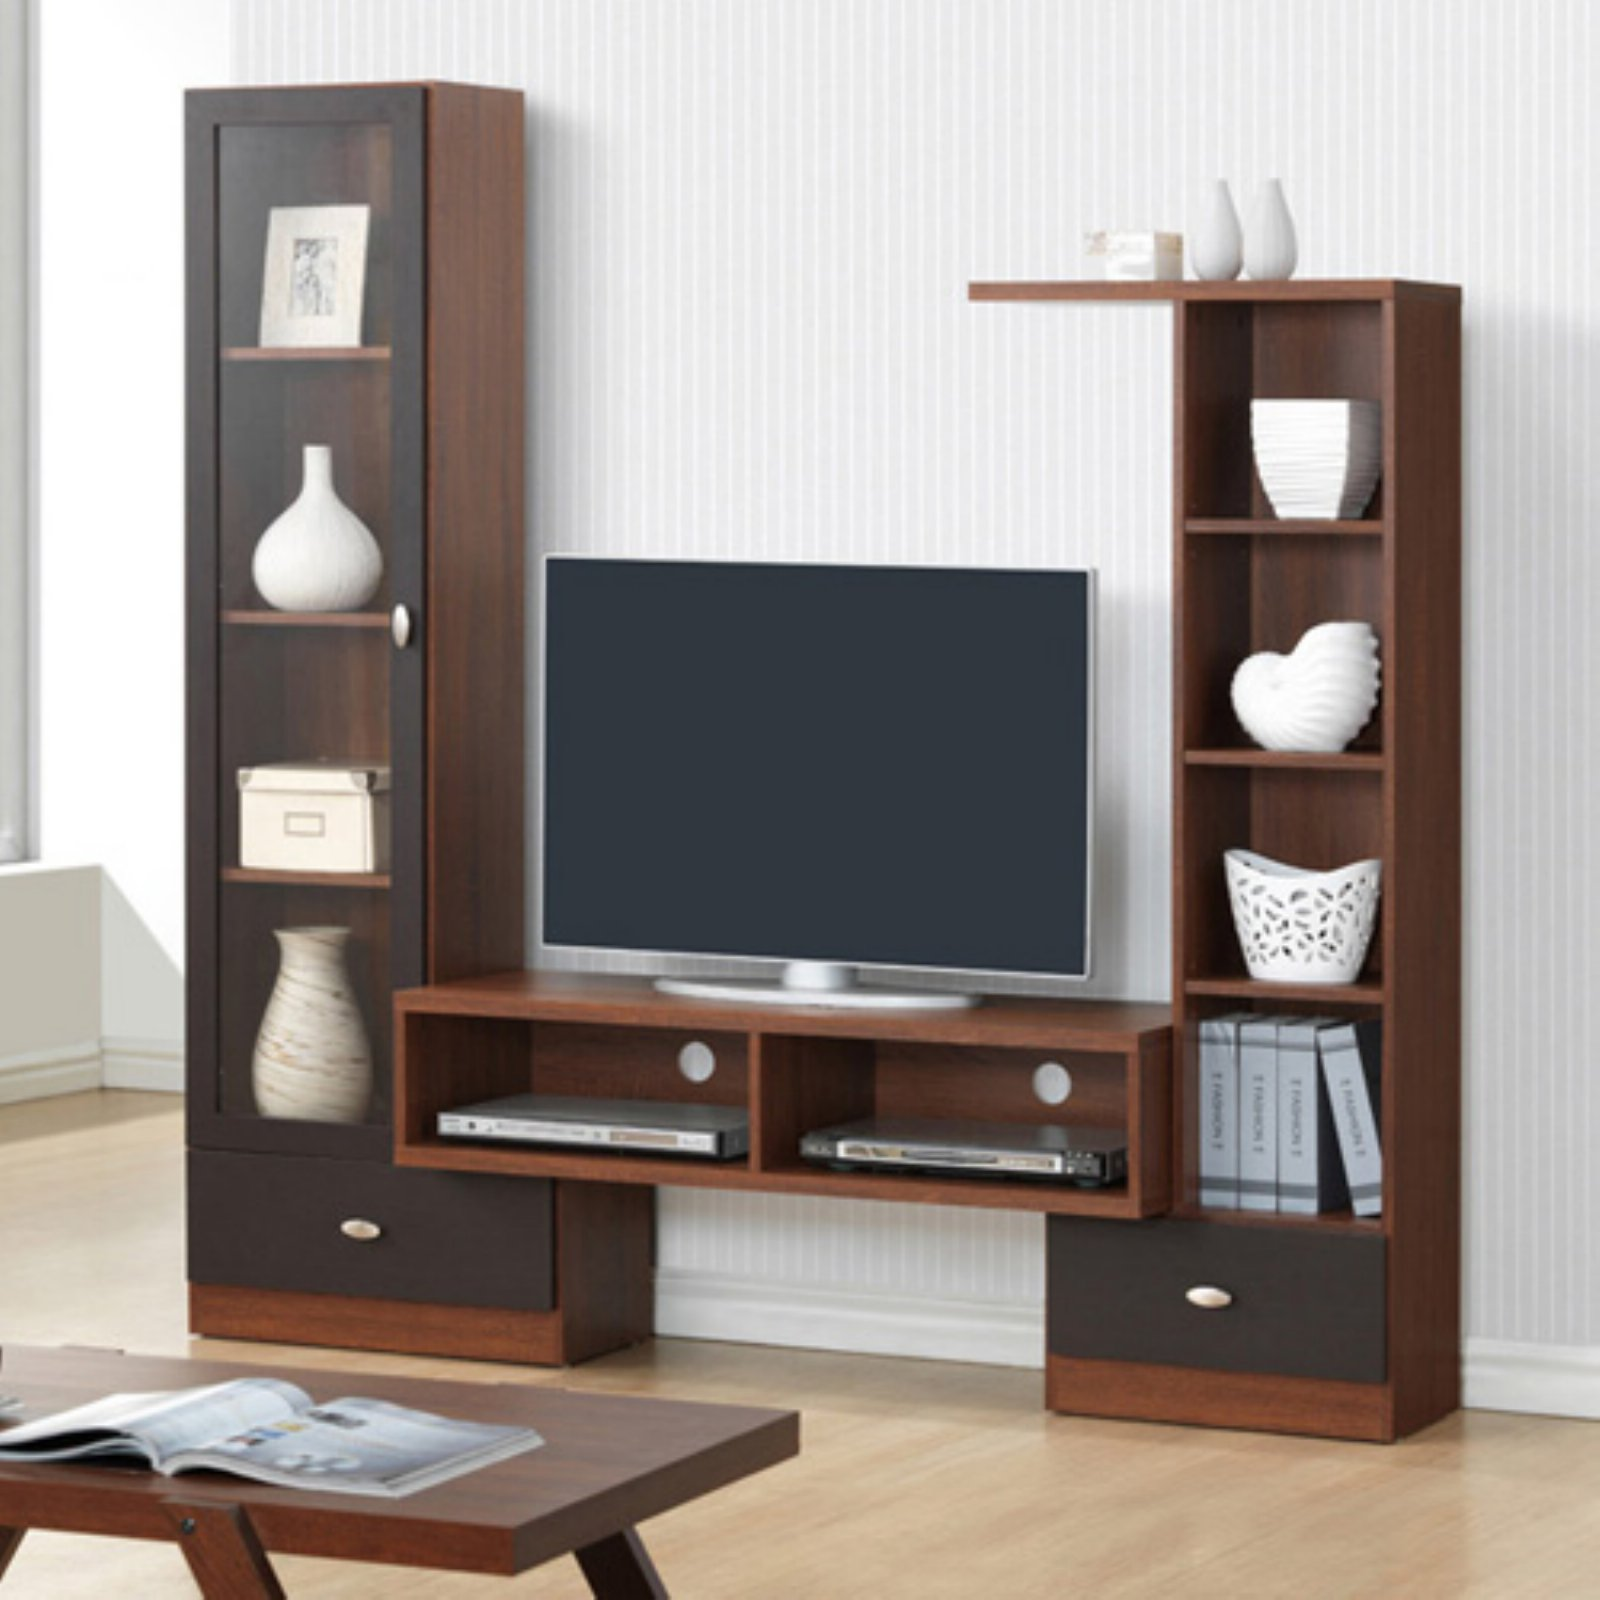 Baxton Studio Empire TV Stand for TV's up to 70""